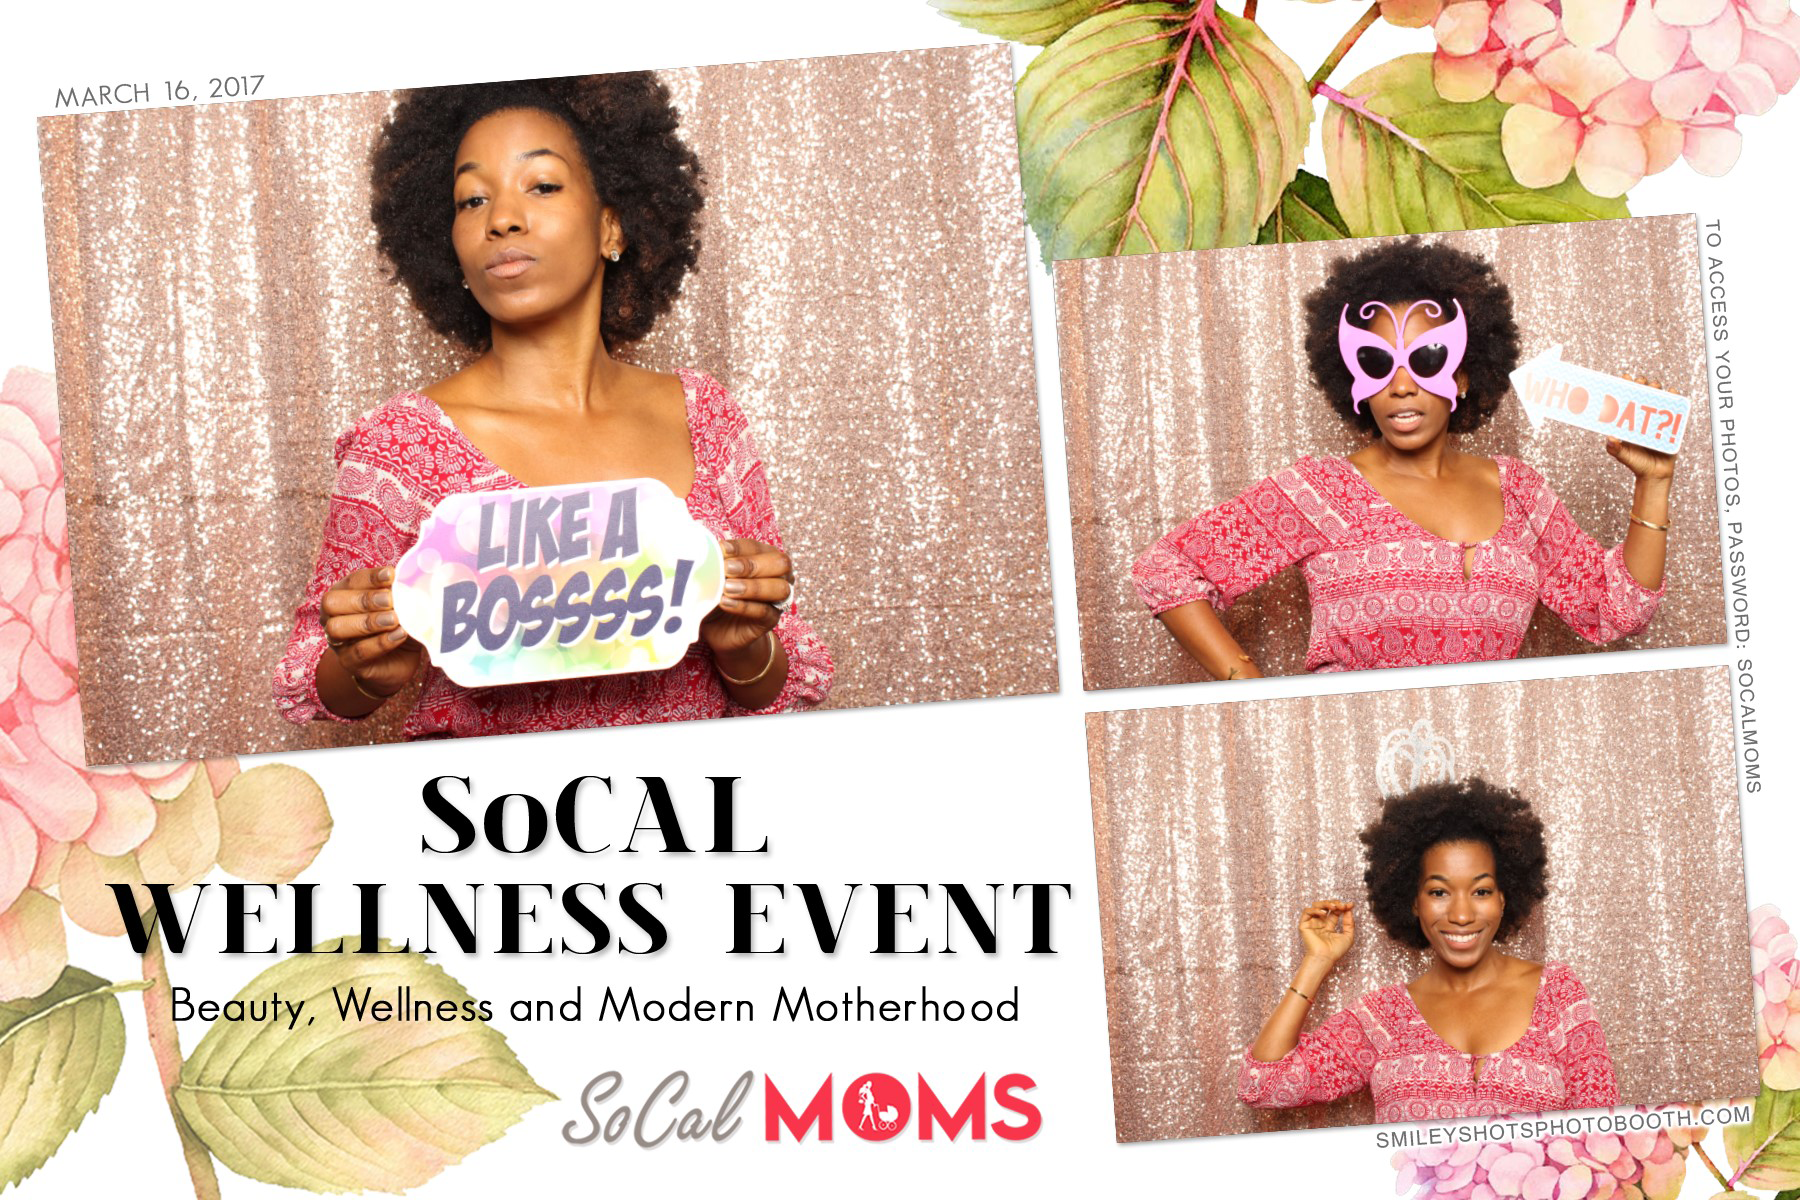 Socal Wellness Event Socal Moms Smiley Shots Photo Booth Photobooth (36).png